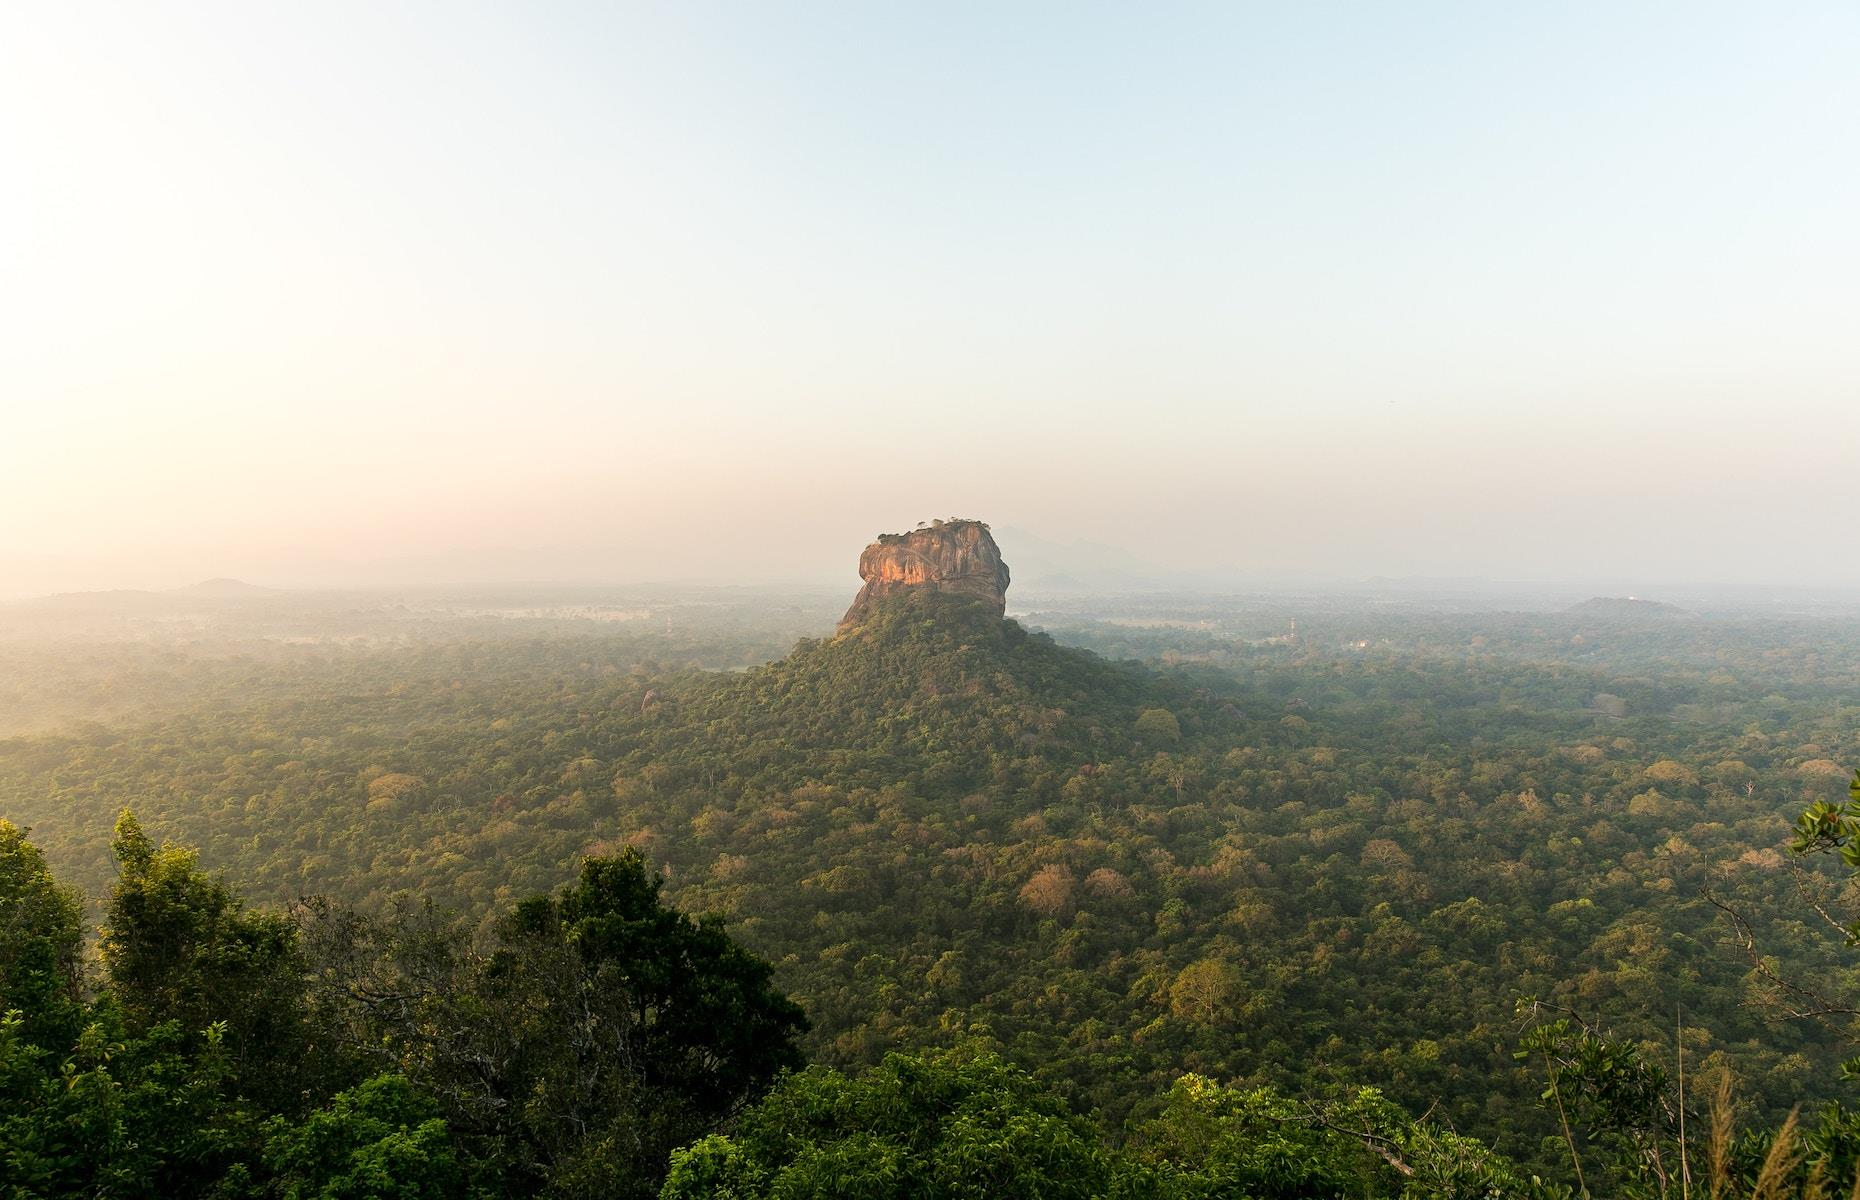 Slide 4 of 51: Jutting out of the plains and forests of northeast Sri Lanka, Sigiriya is one of the country's most spellbinding sights. It's hard to imagine the imposing 656-foot (200m) rock fortress lay forgotten by the outside world until British historians rediscovered it in the 19th century. Built by the king Kashyapa I in the 5th century AD, its name means lion's rock and the entrance is guarded by a pair of giant lion paws. With a mighty 1,200 stepsto the top, the views across thepleasure gardens, jungle and beyond are entrancing. Discover the world's most beautiful ancient cities here.